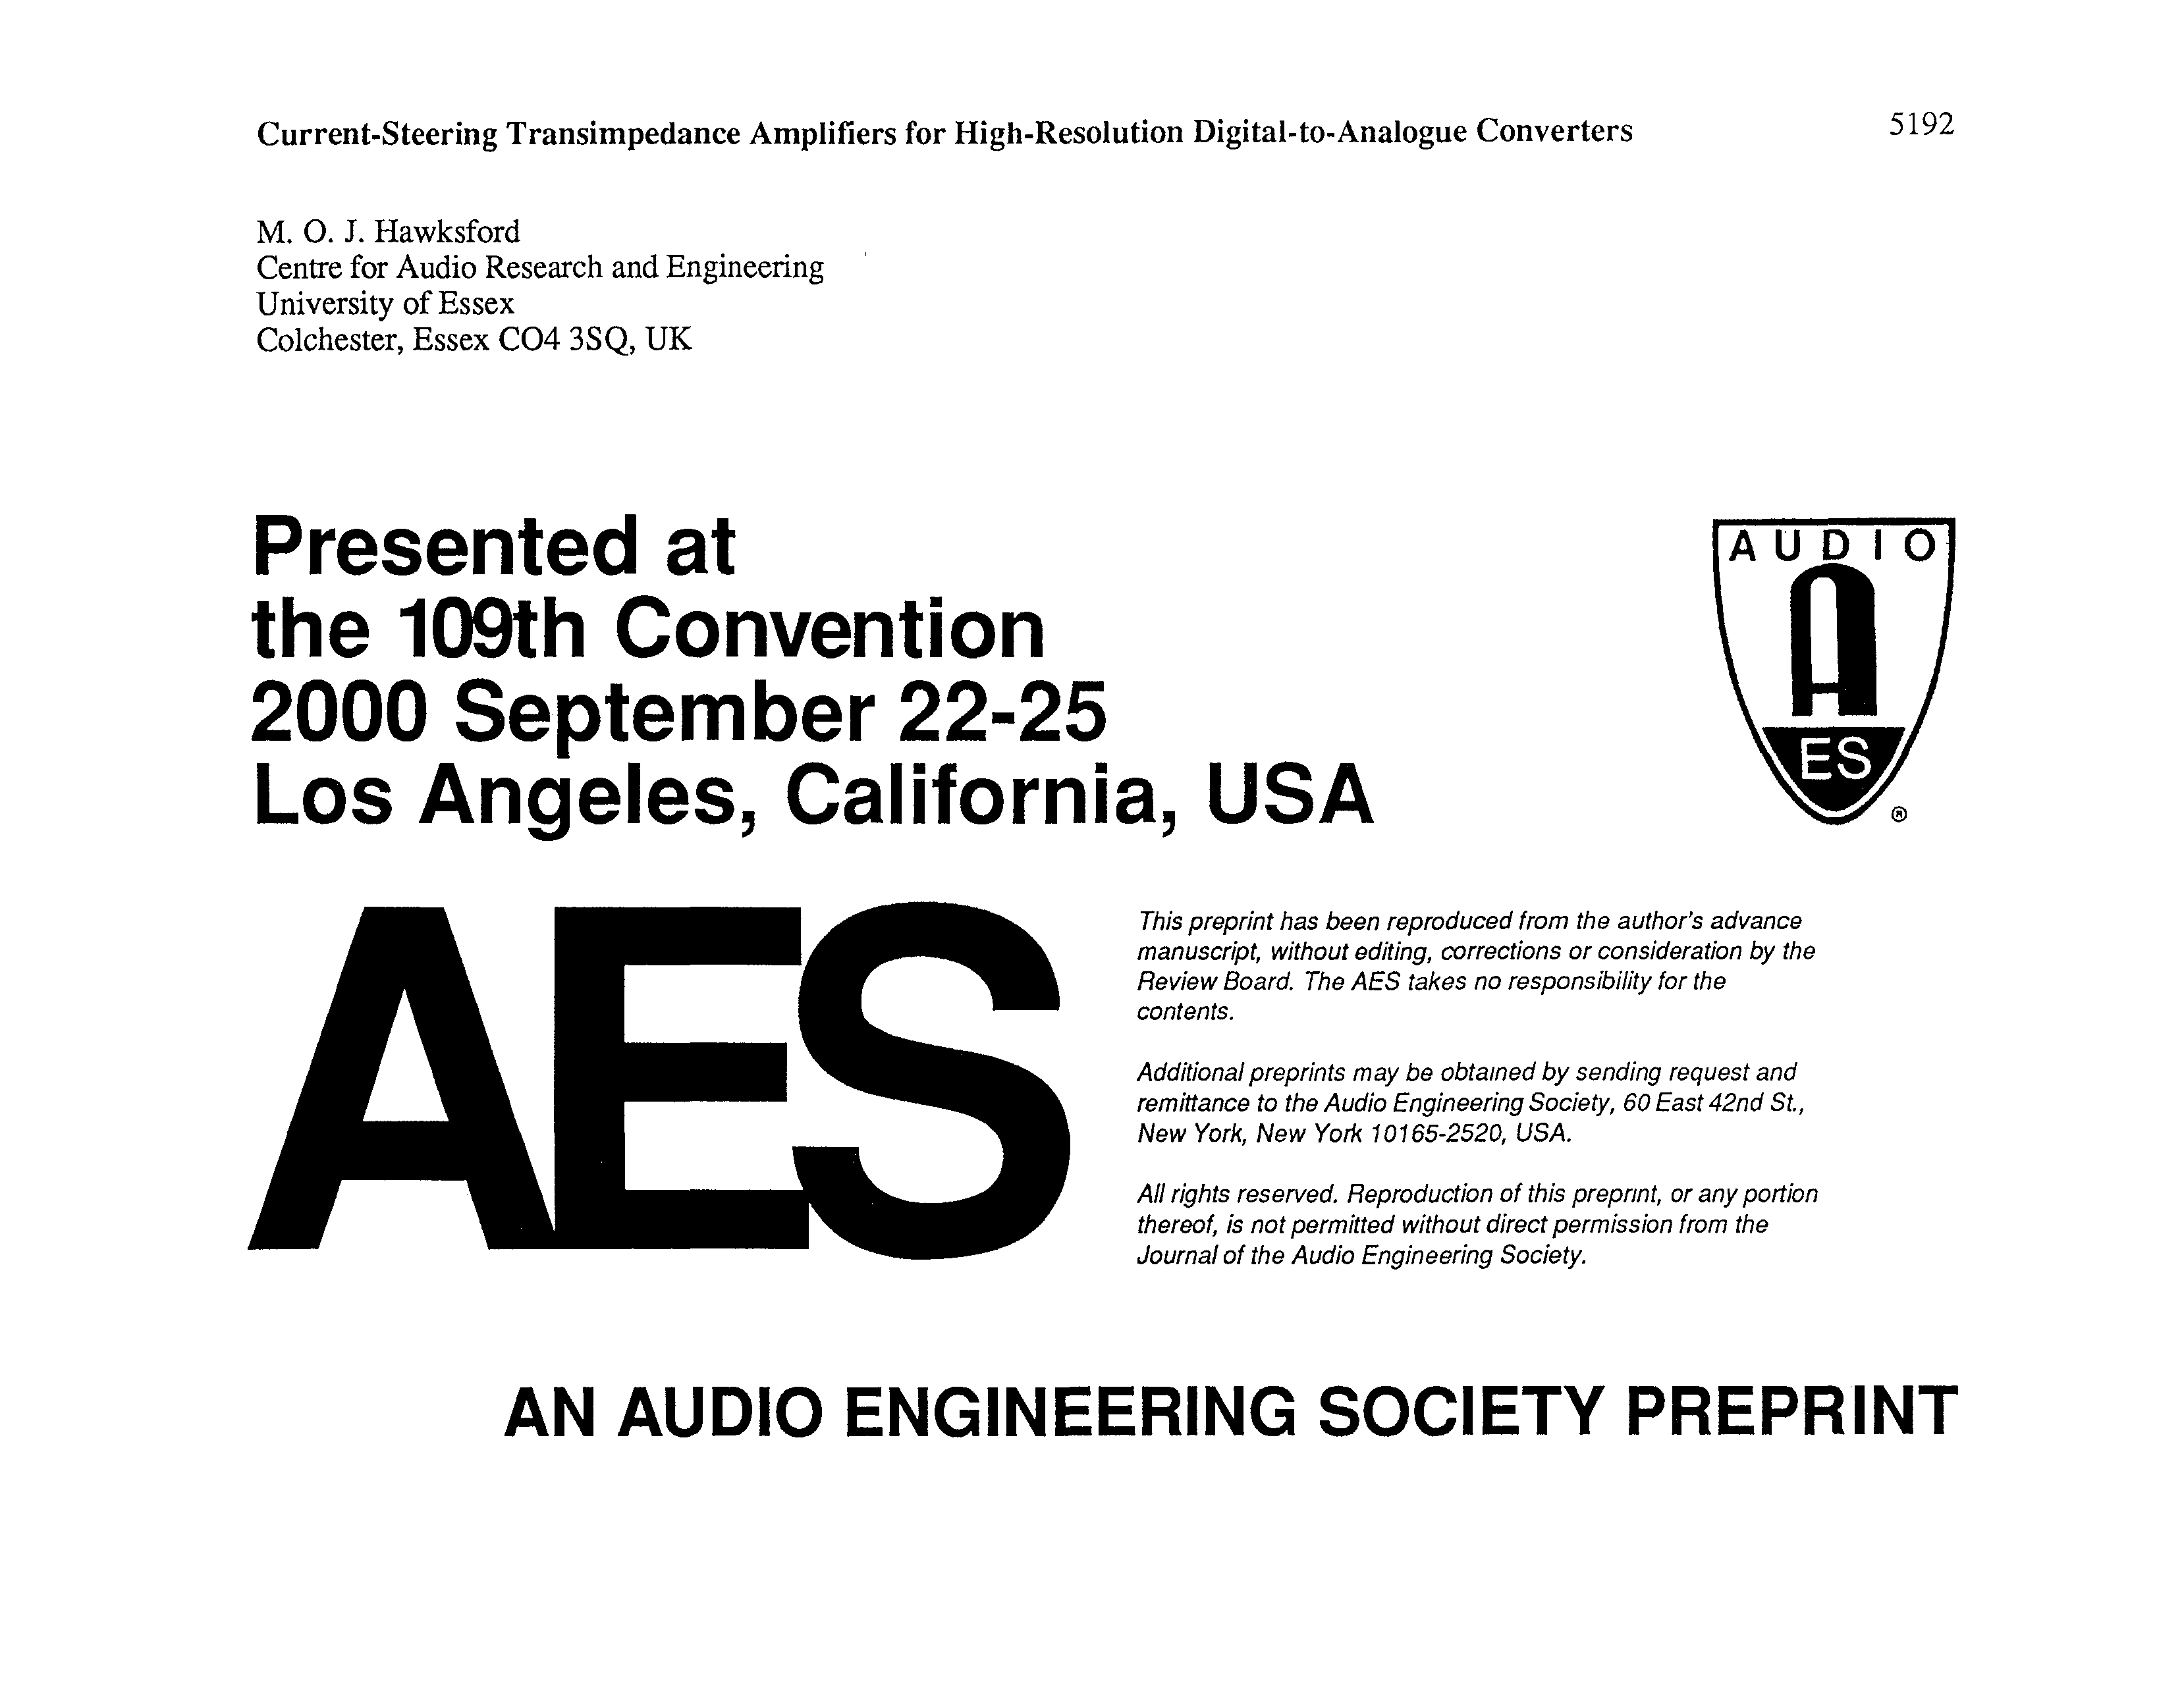 Aes E Library Current Steering Transimpedance Amplifiers For High Proposed Amplifier Schematic Resolution Digital To Analogue Converters